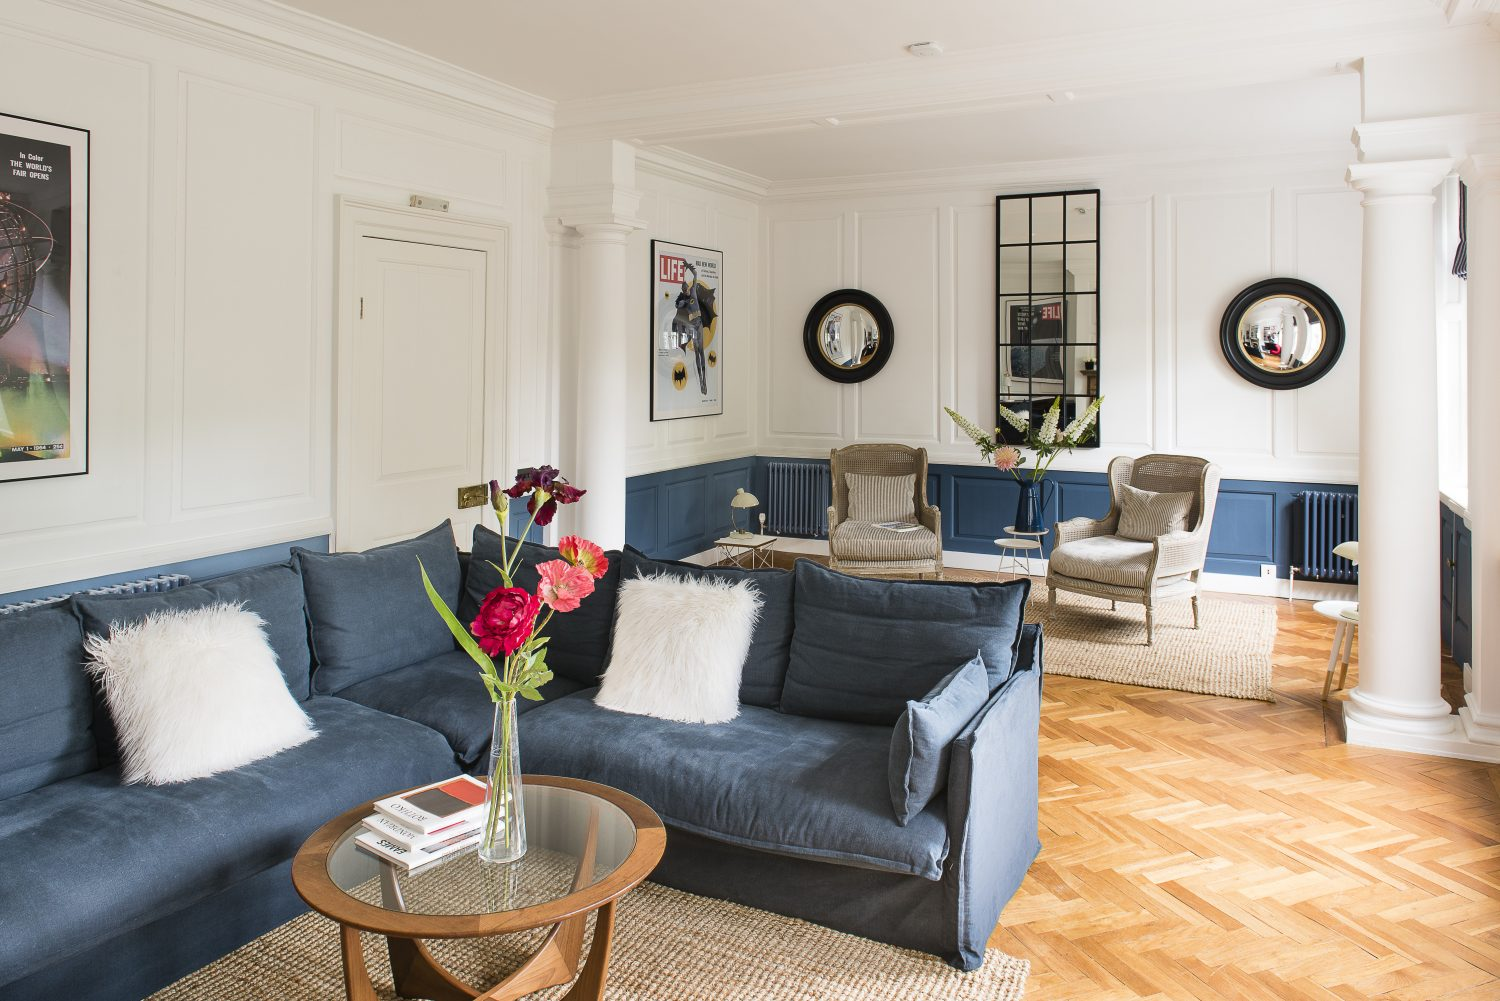 In the drawing room, barred mirrors reflect the Georgian bars of the actual windows. The sofa.com sofa matches the lower wall to create a simple but controlled effect